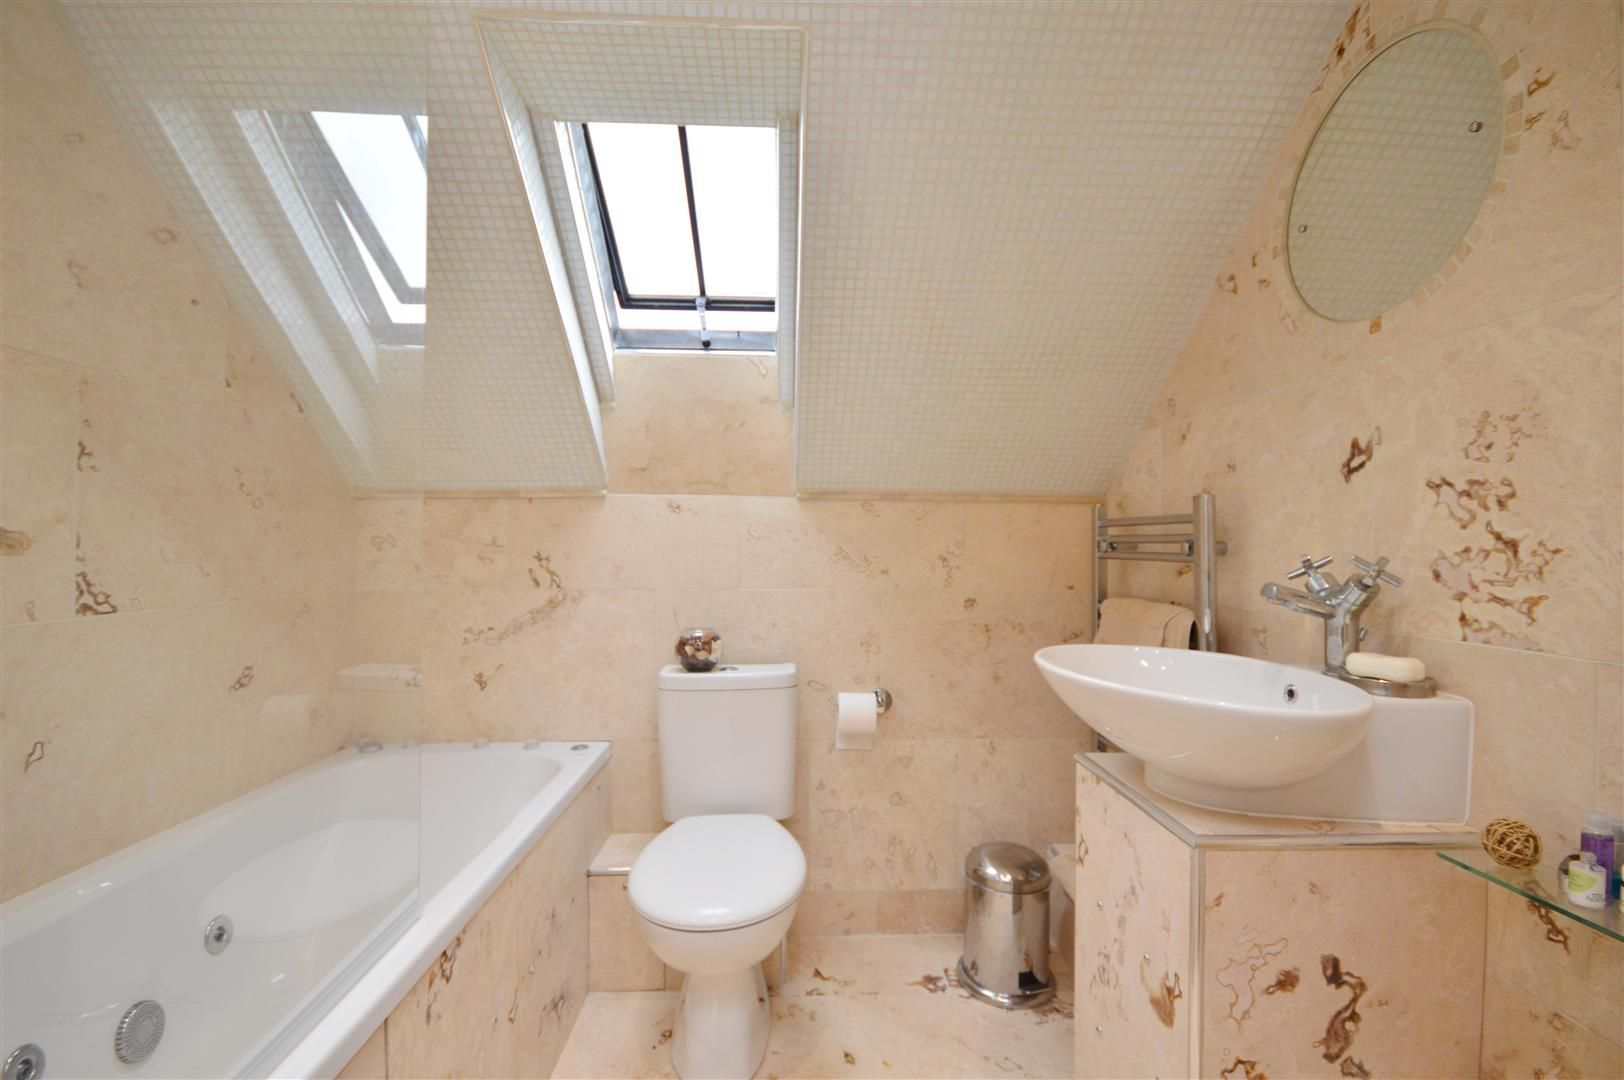 3 bed semi-detached for sale in Staunton-On-Wye  - Property Image 8